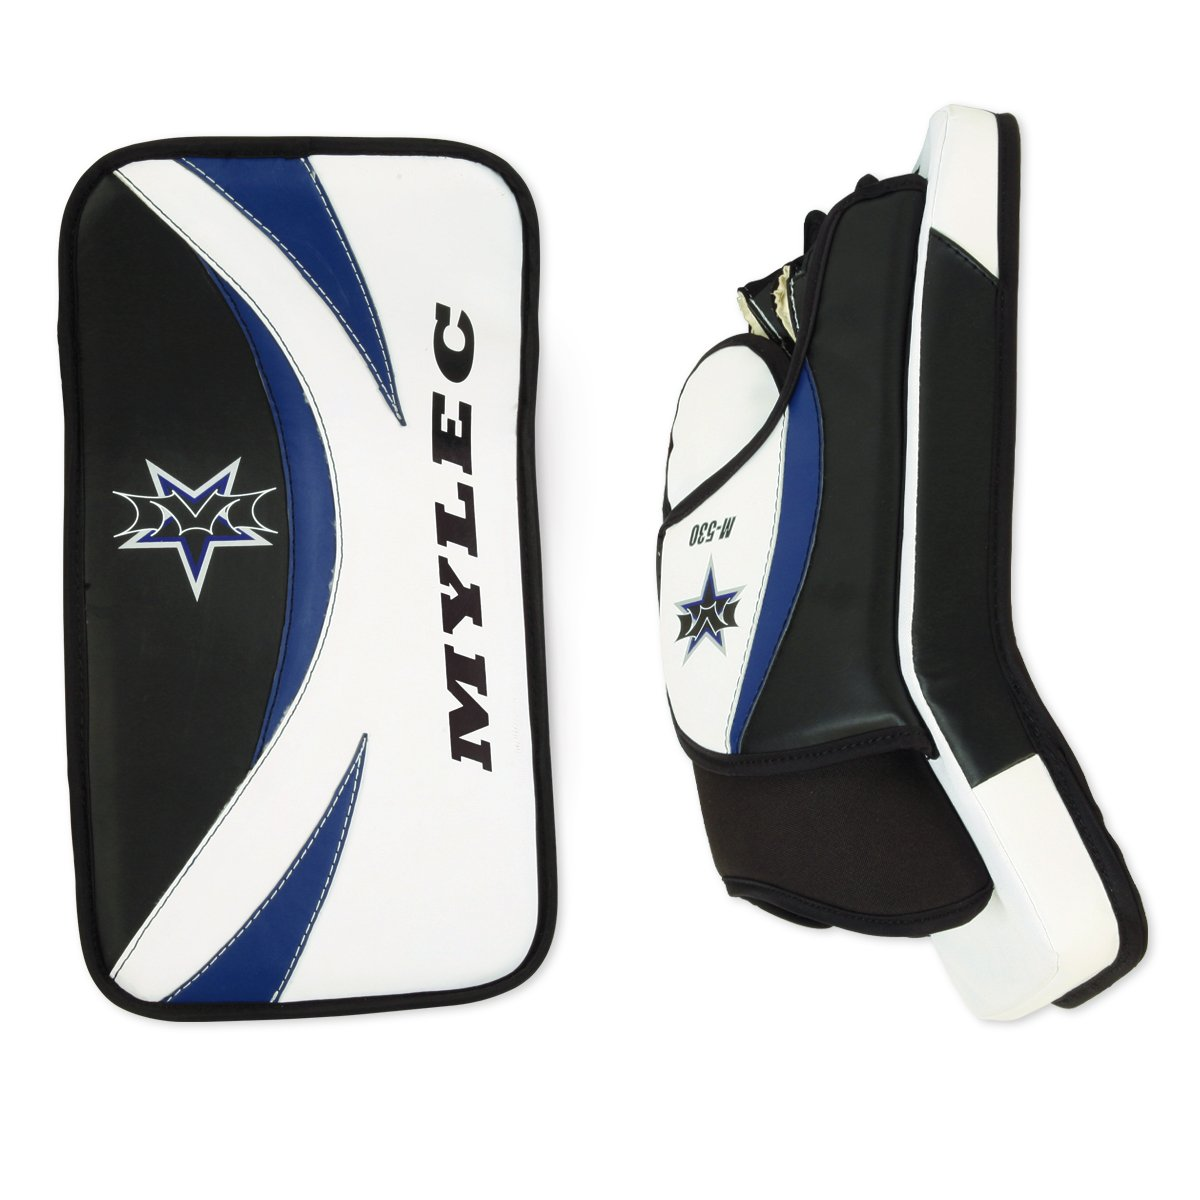 Mylec Pro Goalie Blocker - Youth - Full Right 540AR